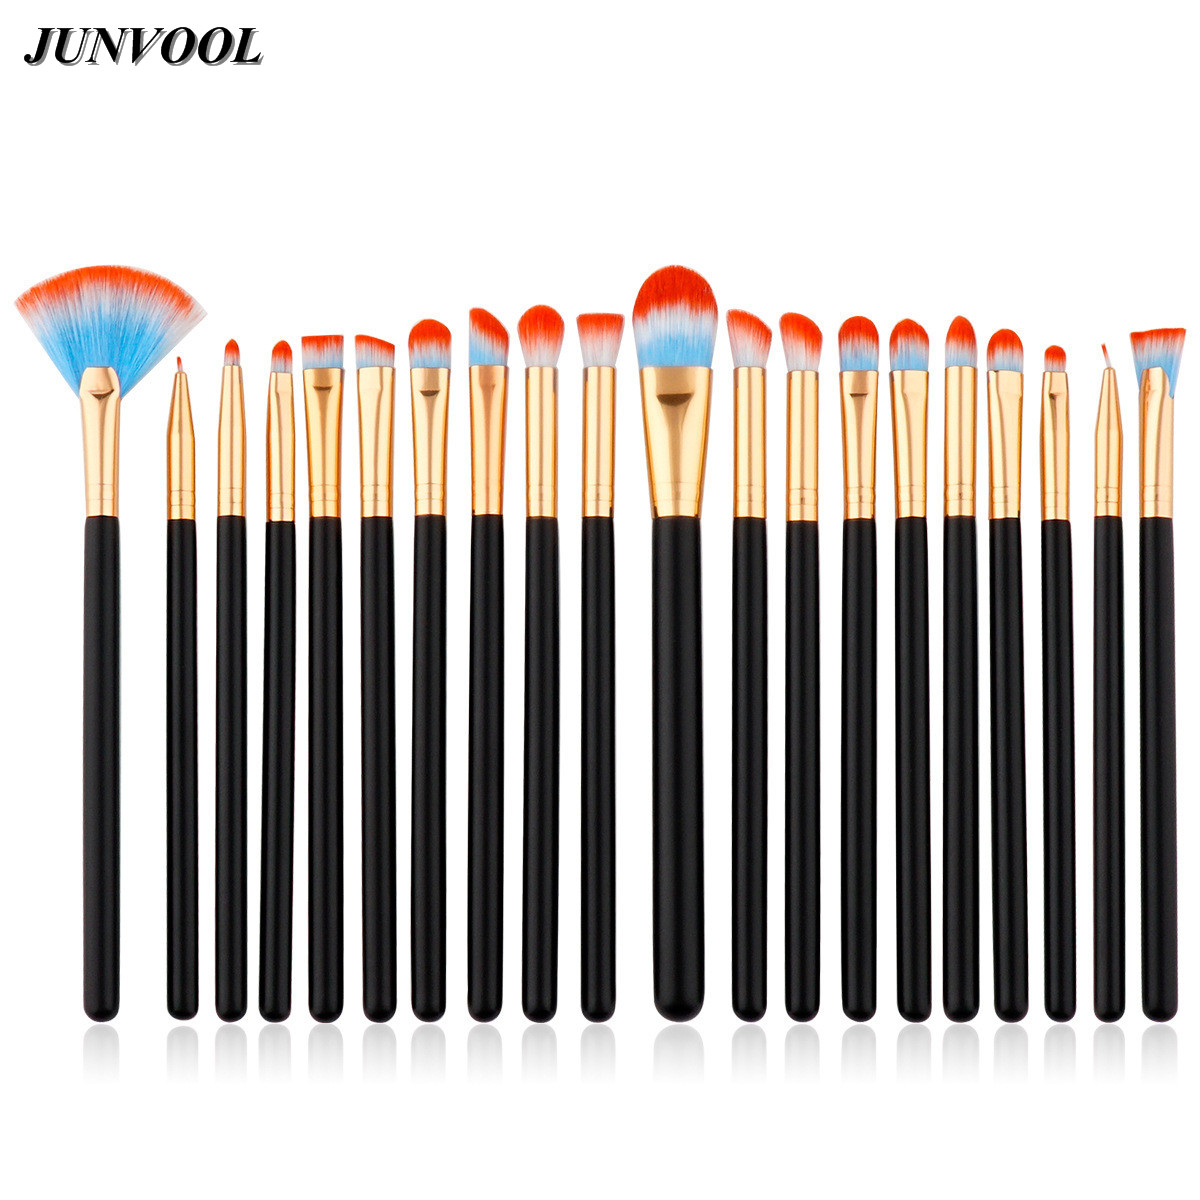 20Pcs Eye Shadow Makeup Brushes Set Eyeliner Eyelid Eyebrow Eyeshadow Lip Make Up Fan Brush Colorful Cosmetics Beauty Tools Pro 20 pcs set makeup brushes set eye shadow foundation eyeliner eyebrow lip brush cosmetics tools kits beauty make up brush 2017